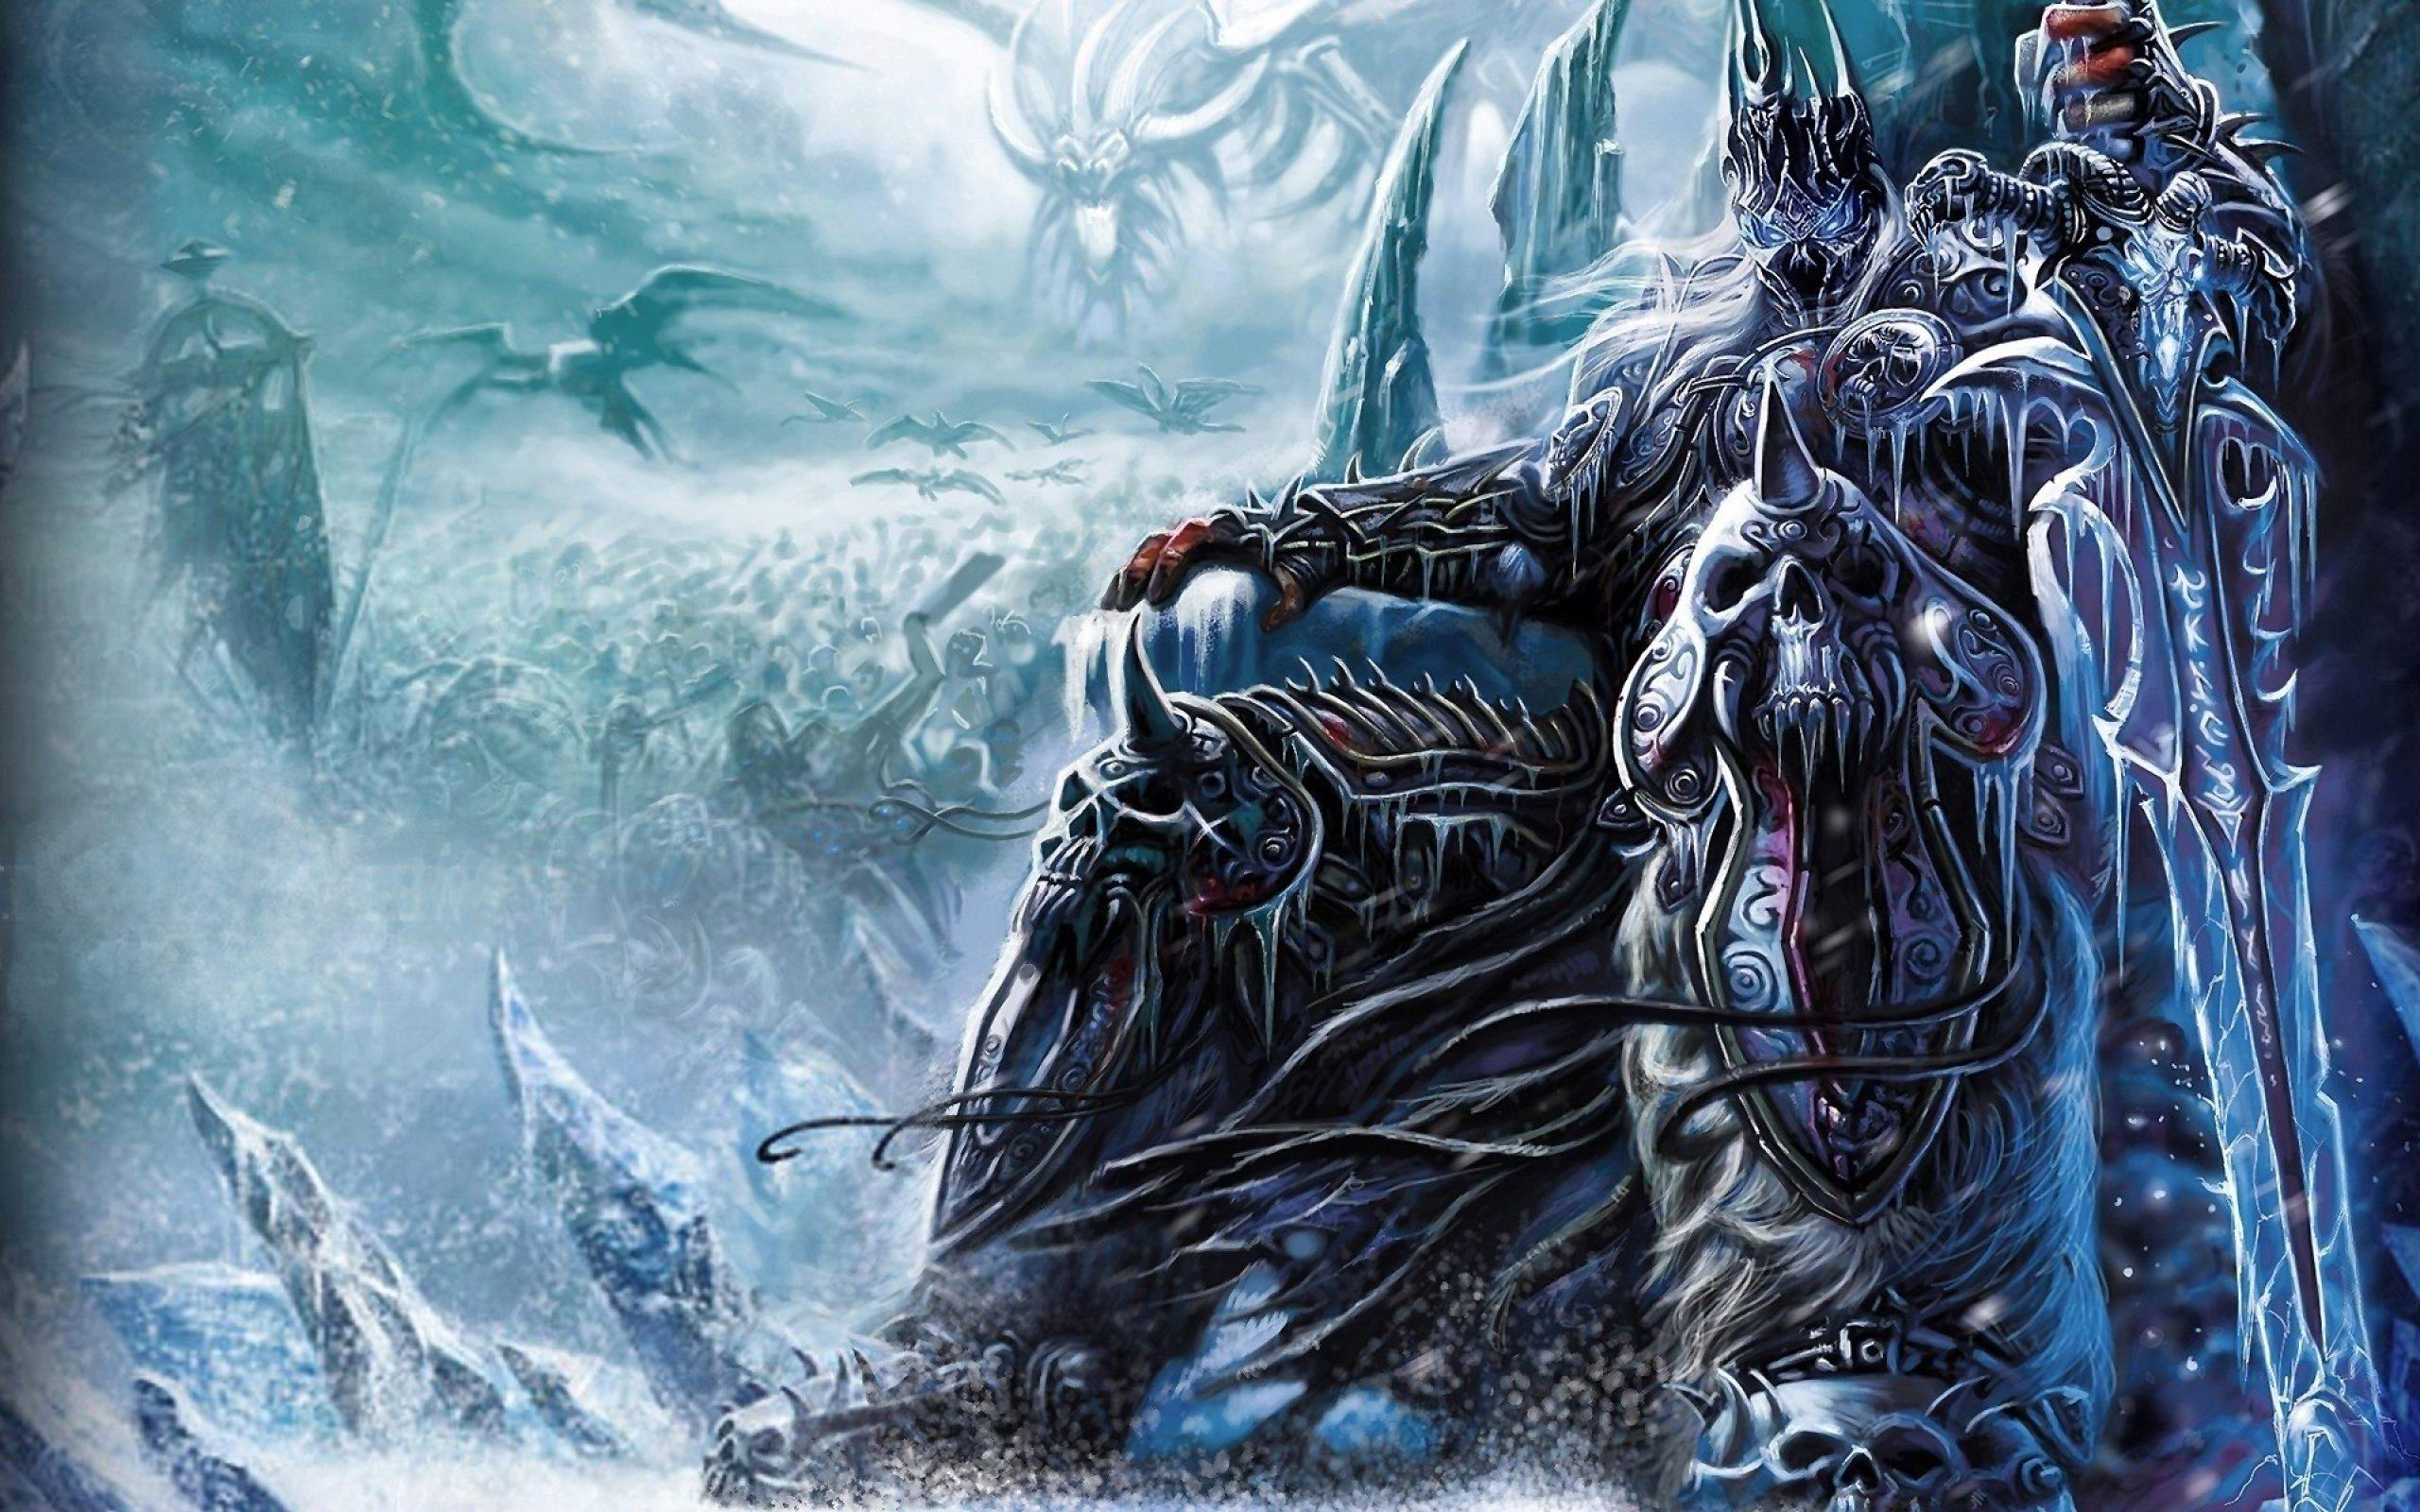 Find out: World Of Warcraft Wrath of The Lich King wallpaper on